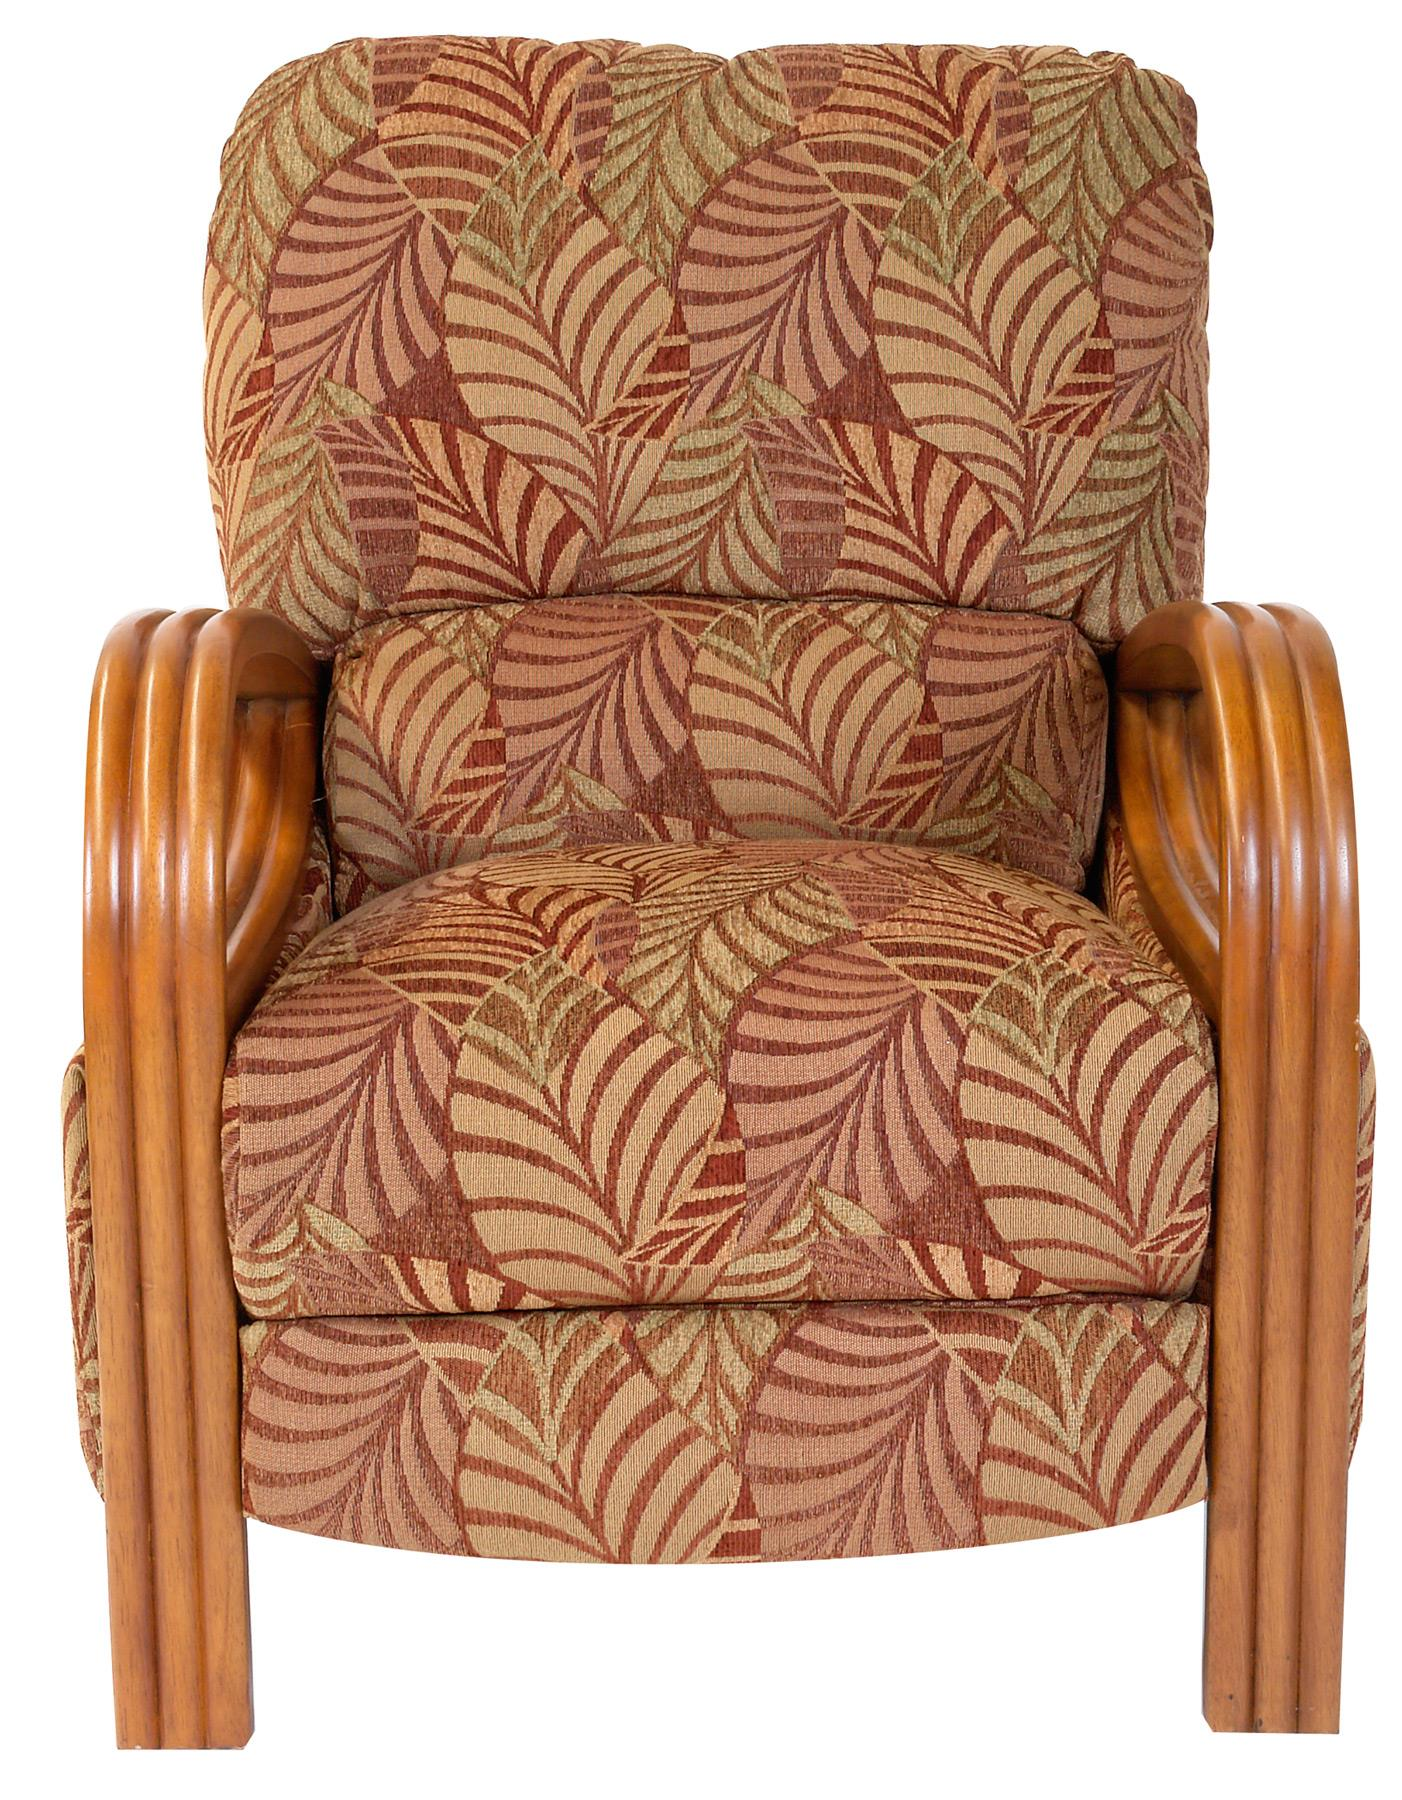 Synergy Home Furnishings Key Largo Recliner   Item Number: 743 86 KEY LARGO